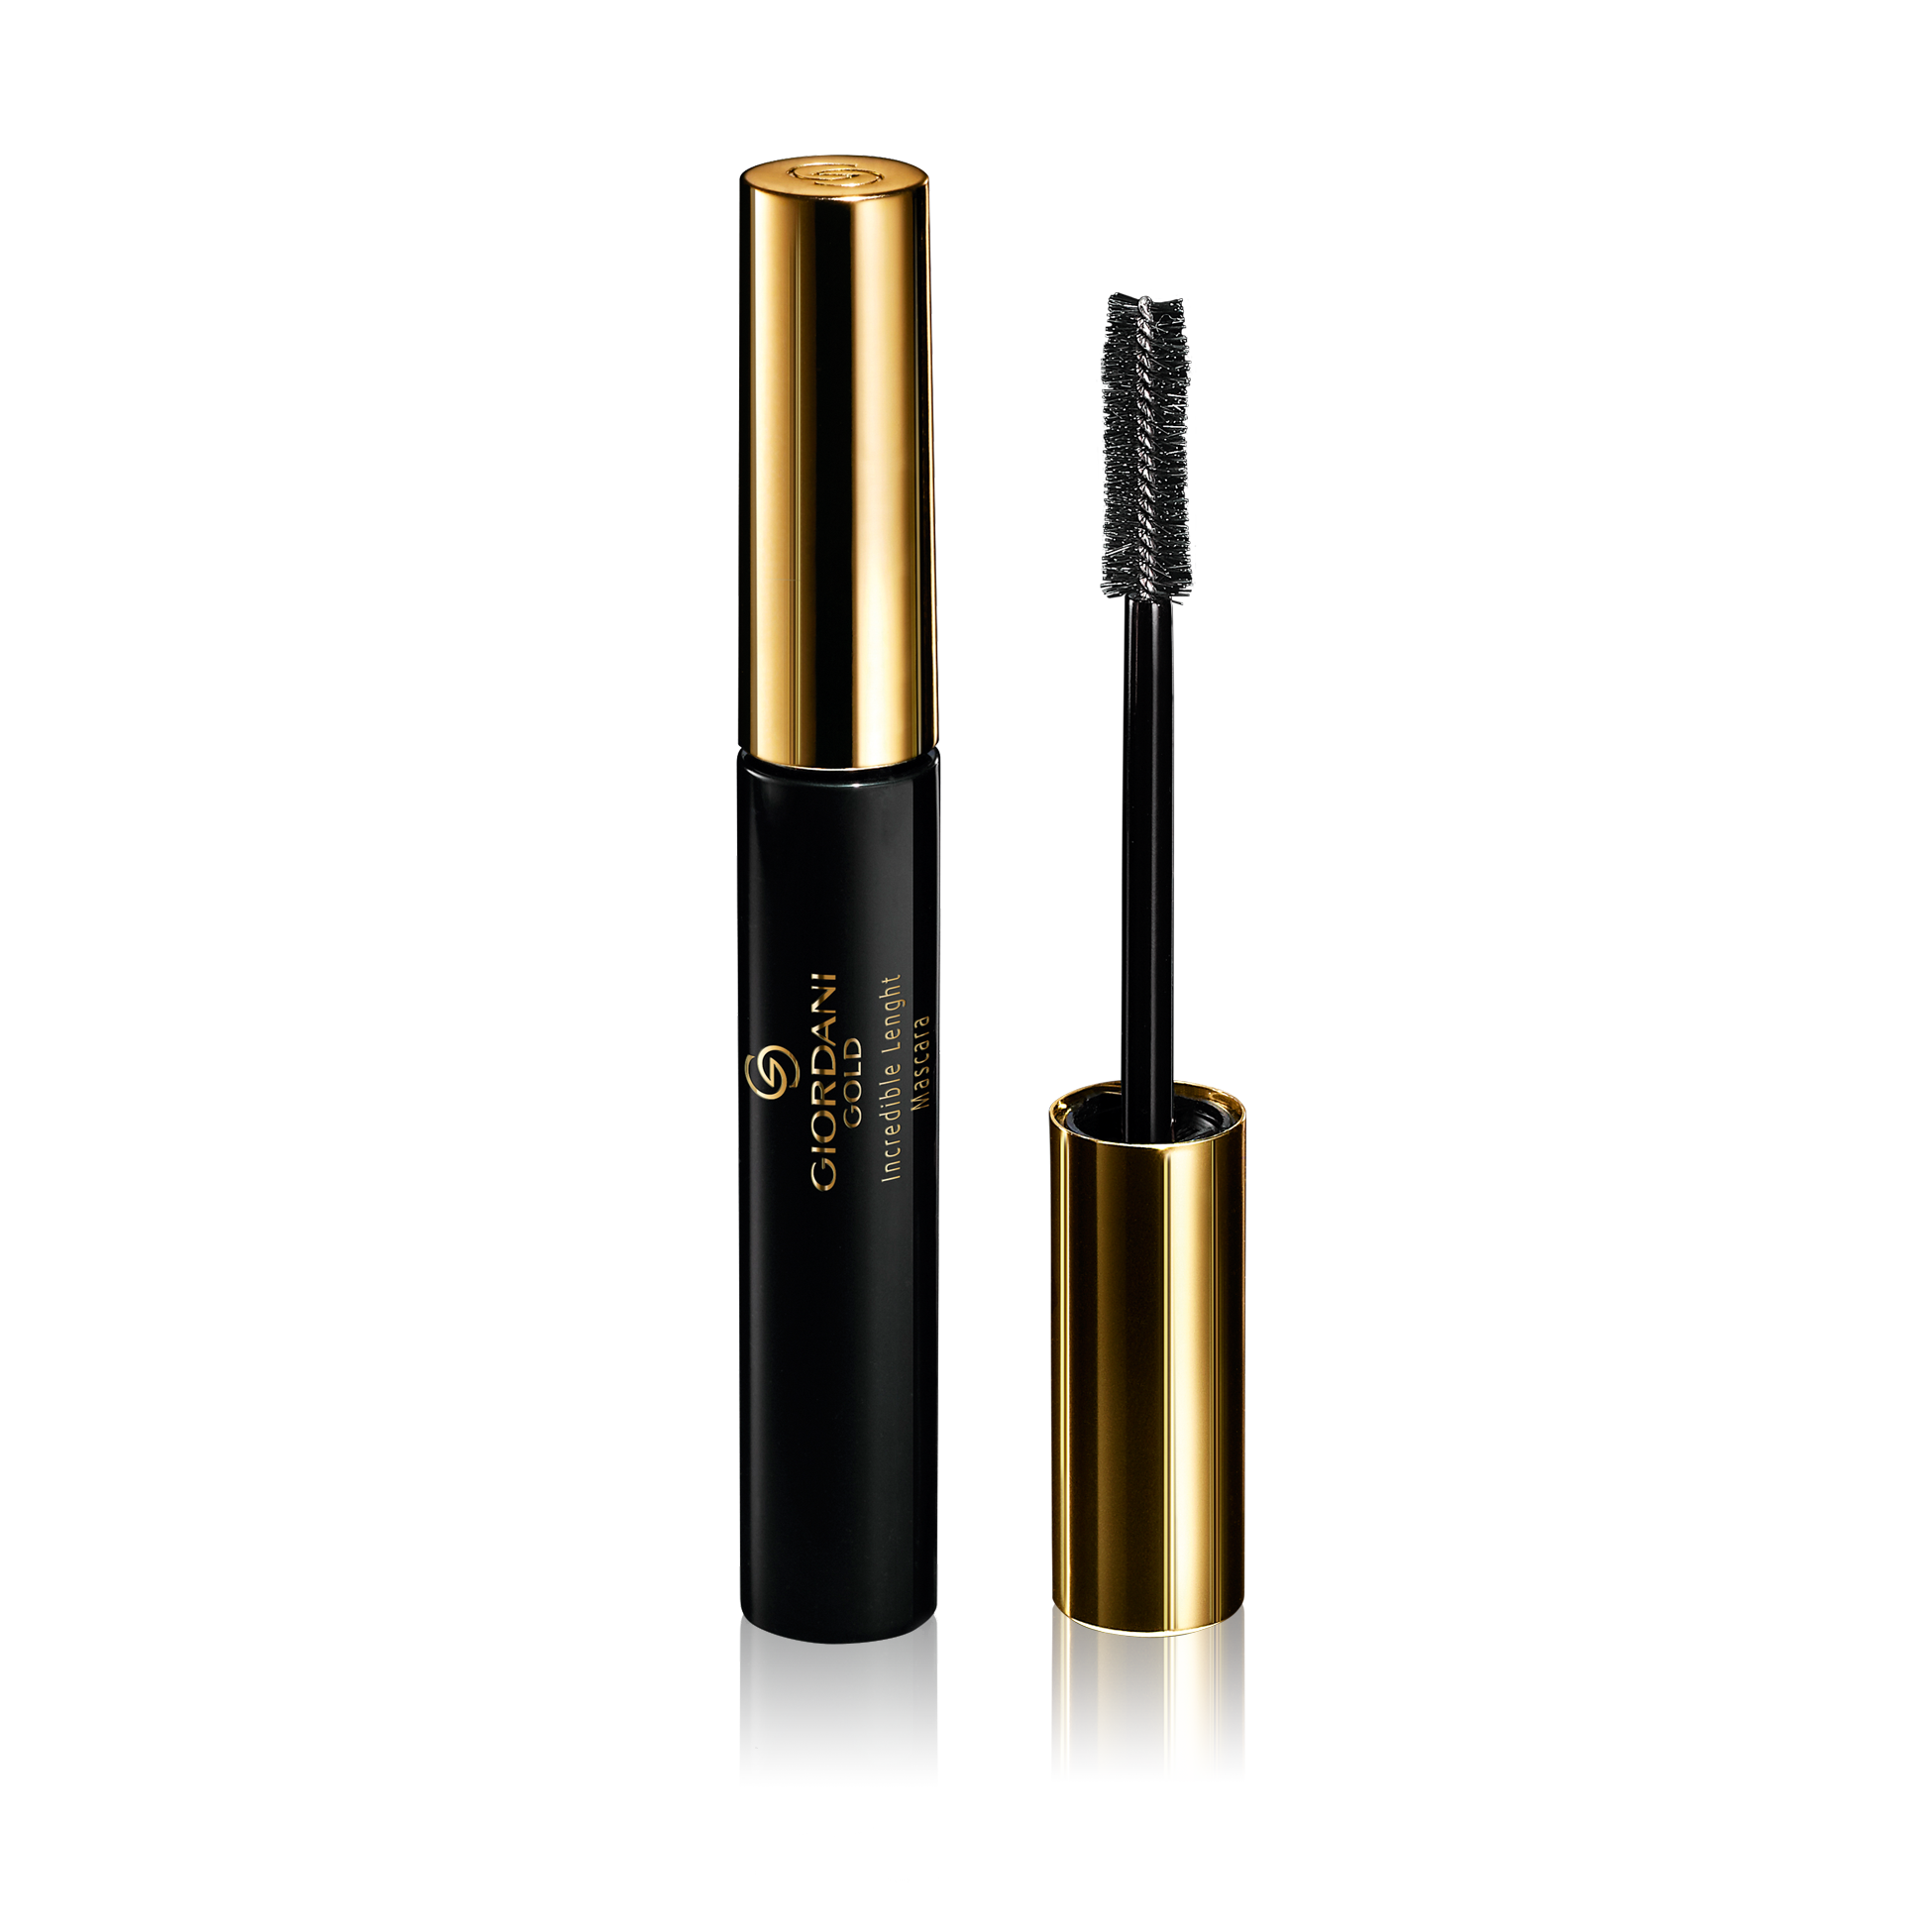 Mascara dài mi Giordani Gold Incredible Length Mascara-32079